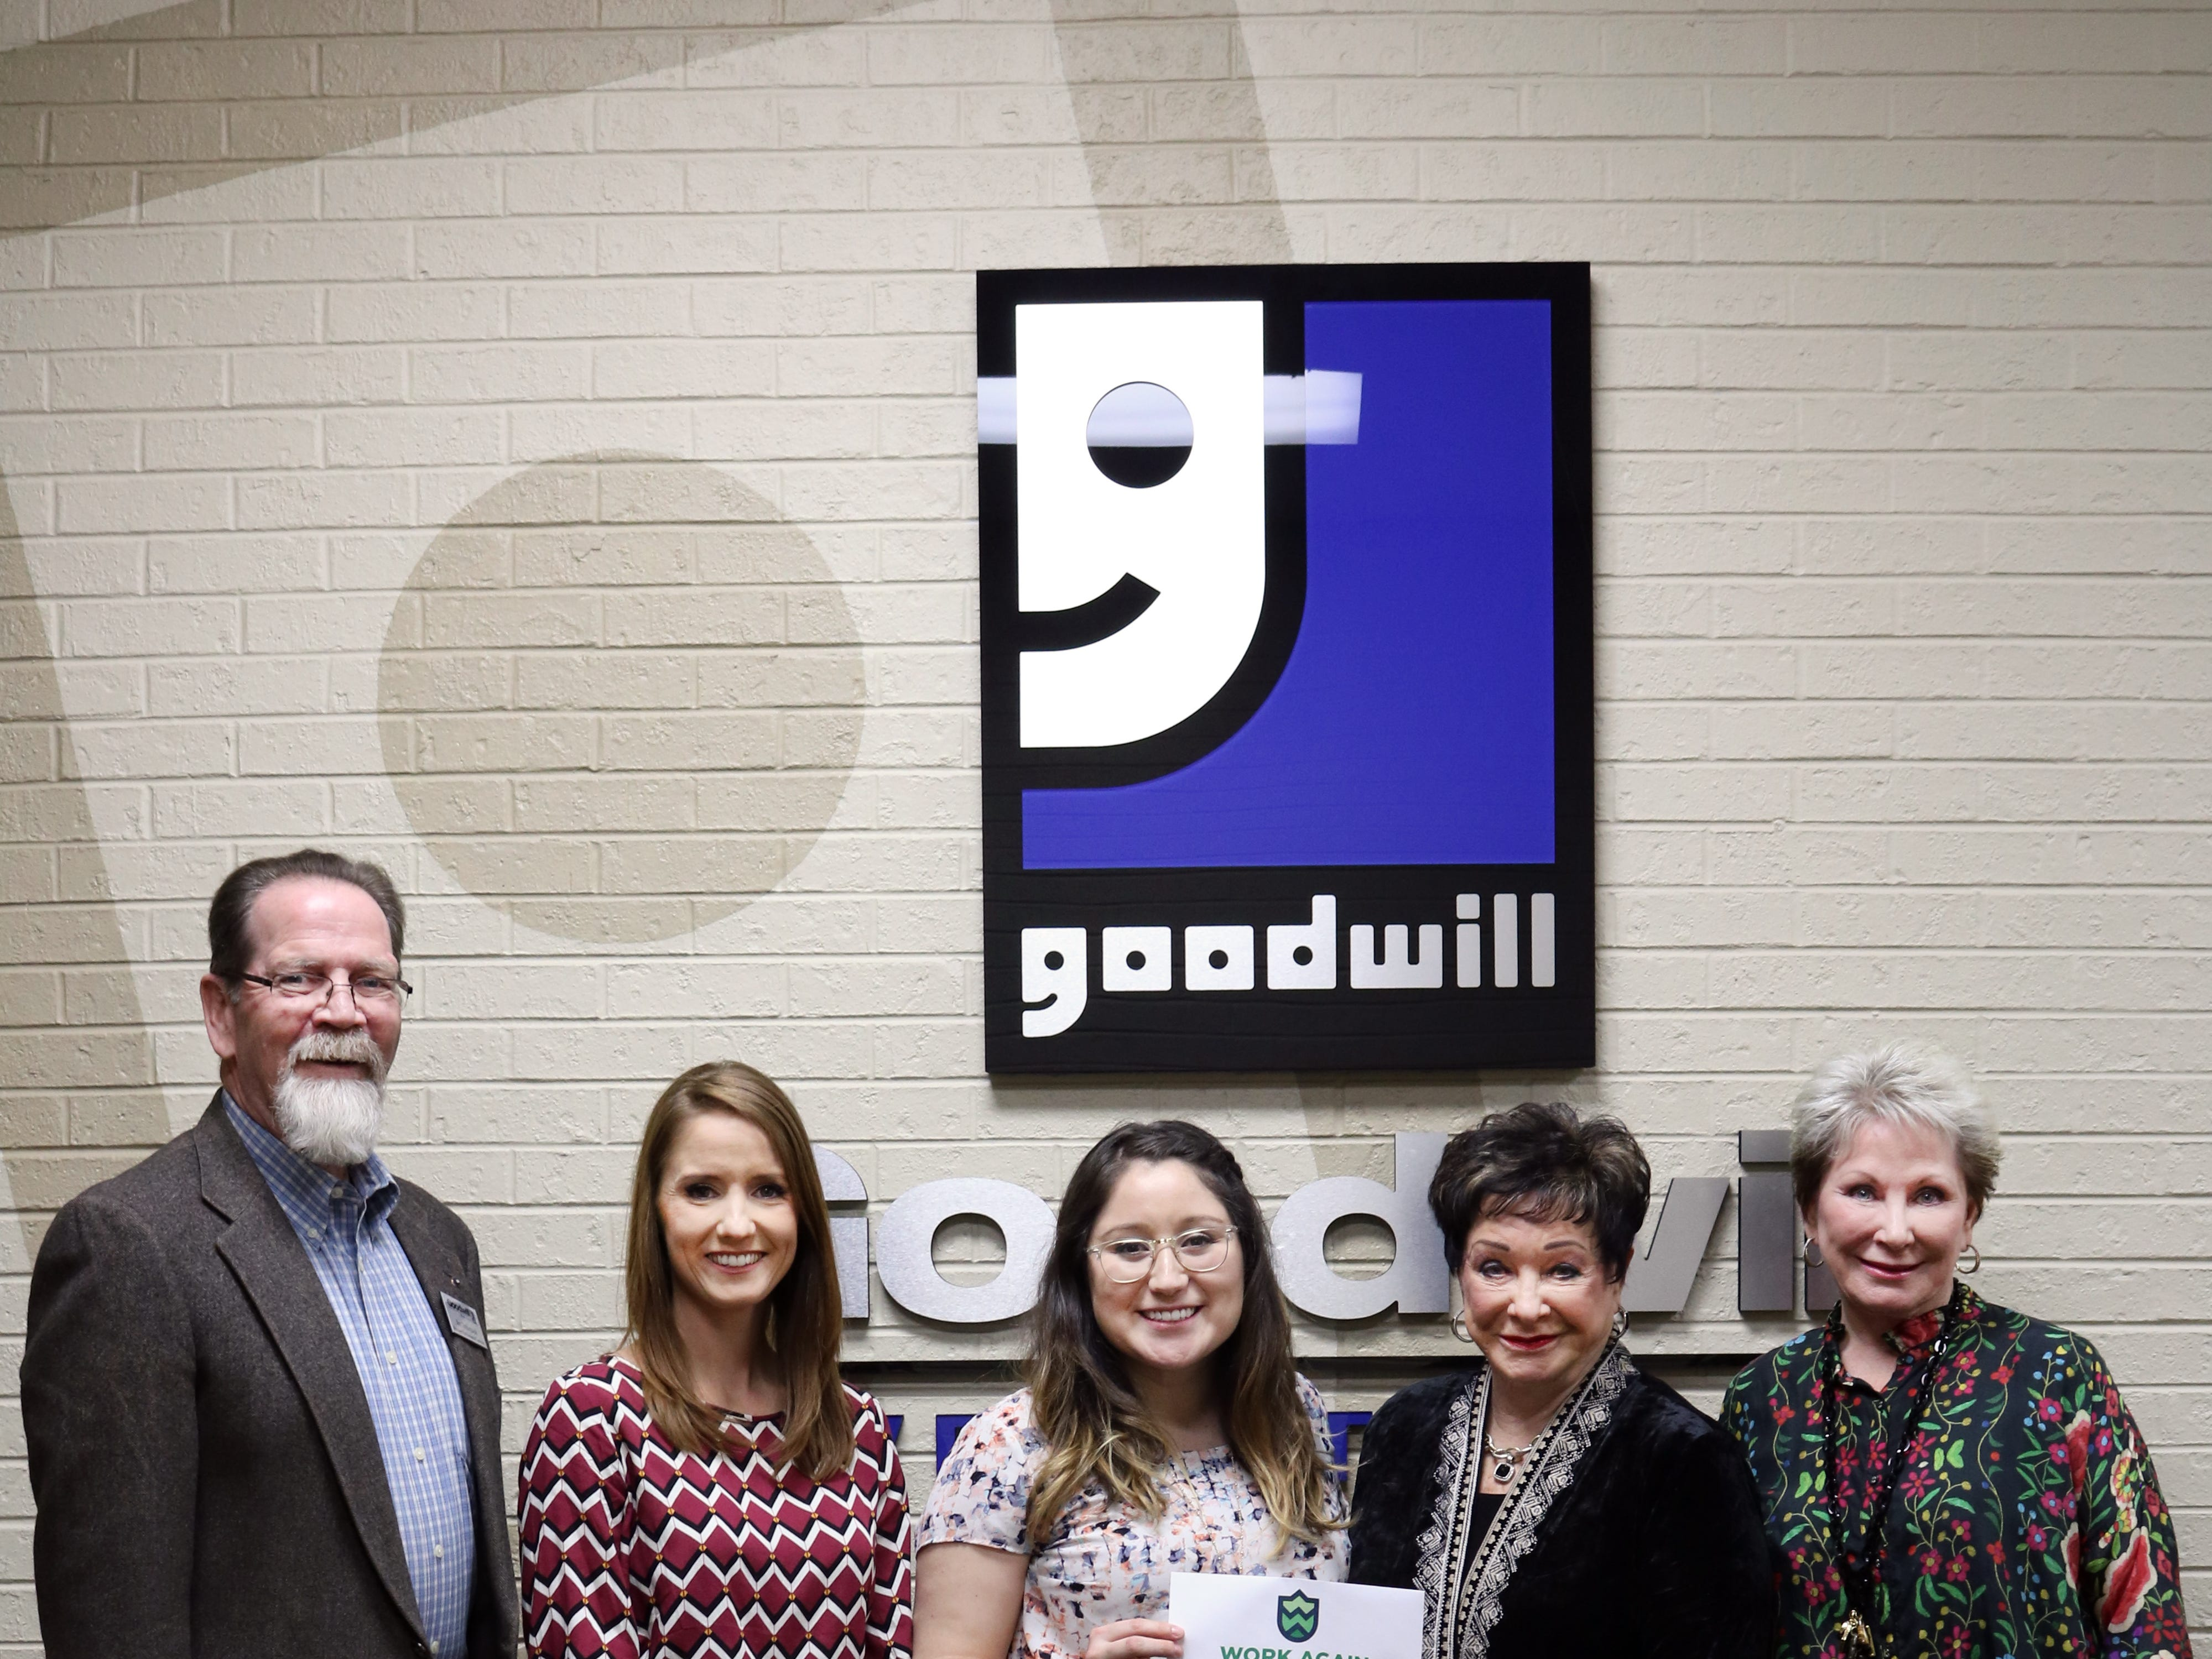 Billye Proctor Shaw and Yanell Rieder present $20,000 raised at the inaugural Women, Bags & Bingo event to Work Again West Texas. The program, run by Goodwill-West Texas, will launch in 2019 to help to provide jobs for people experiencing homelessness.